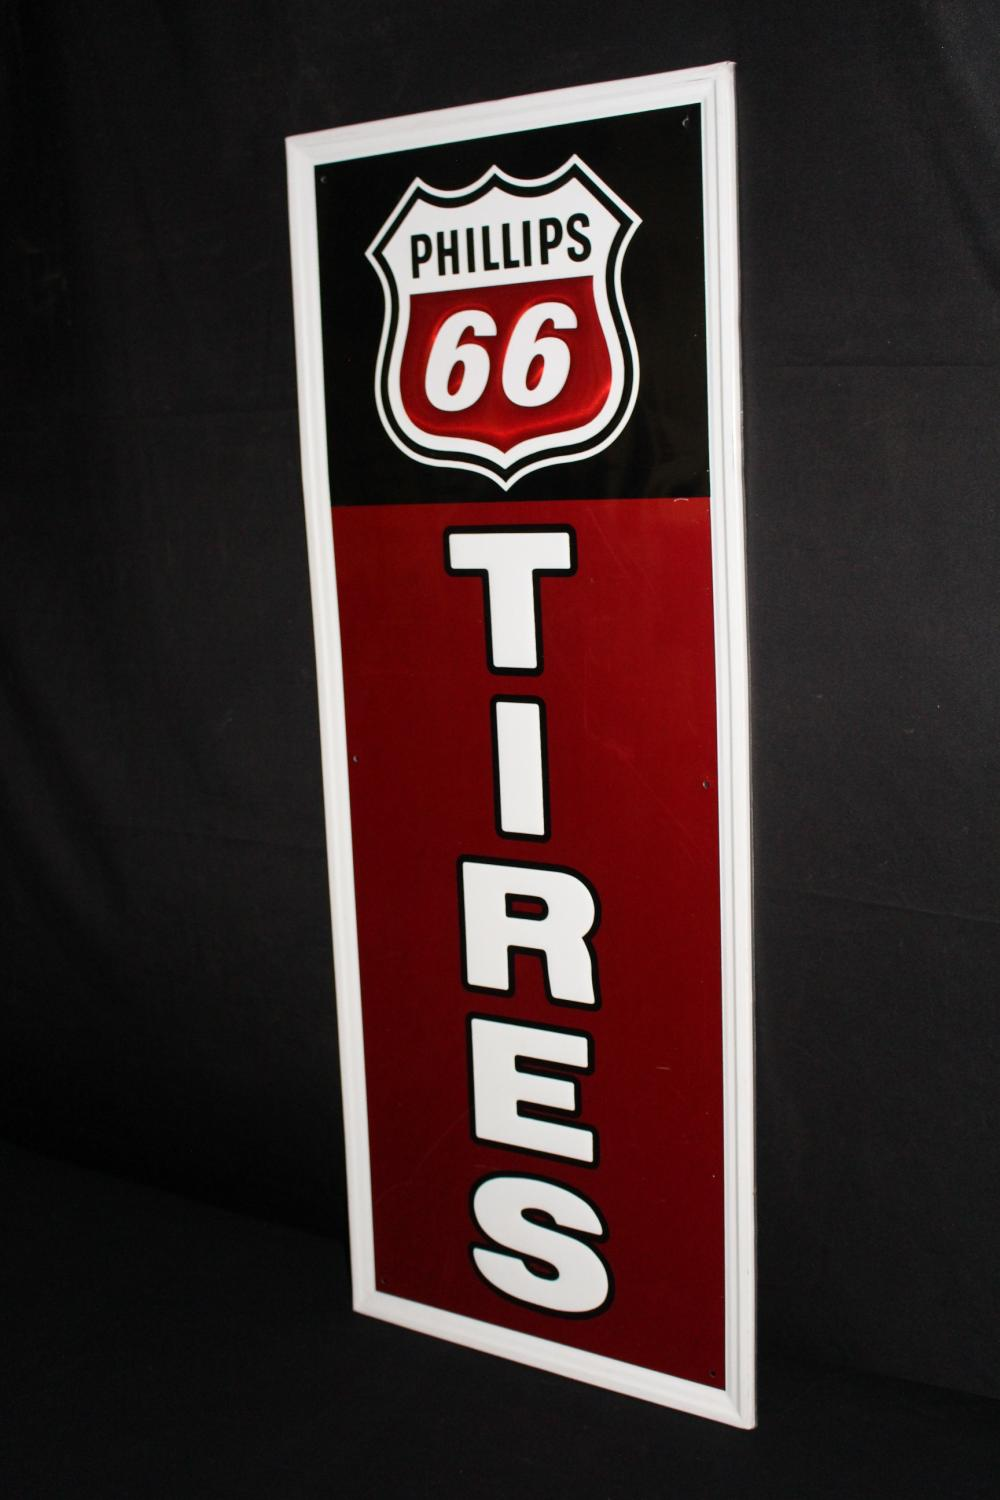 PHILLIPS 66 TIRES SIGN